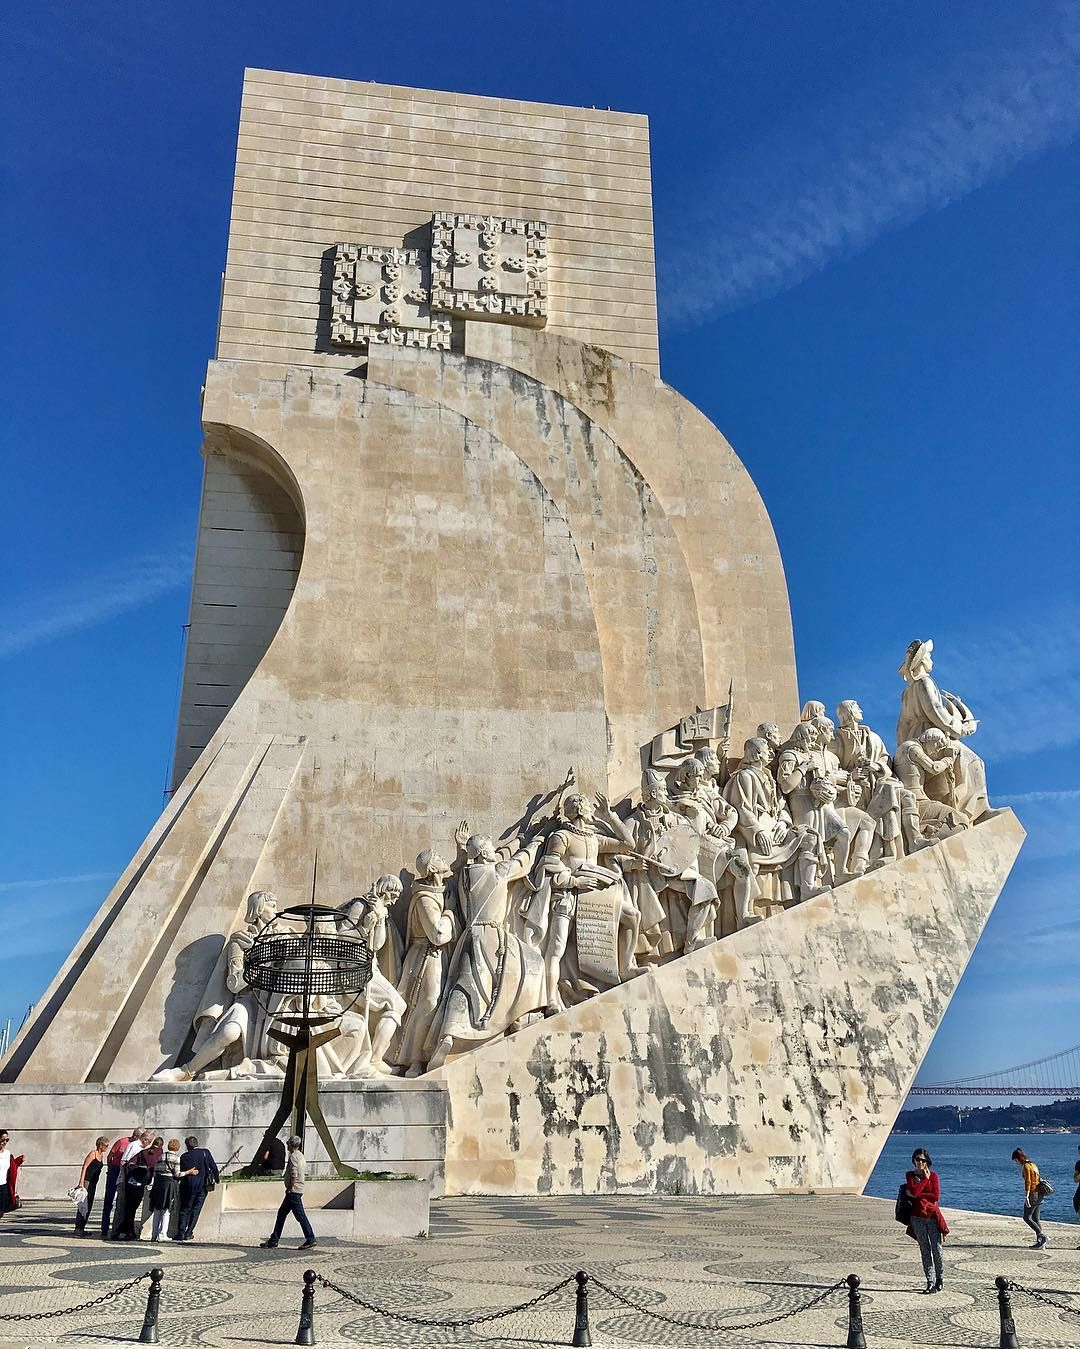 Padrao Dos Descobrimentos Is A 171ft High Monument In Belem Lisbon Portugal It Celebrates The Age Of Discoveries And Flankin Vasco Da Gama Seeing 33 Travel